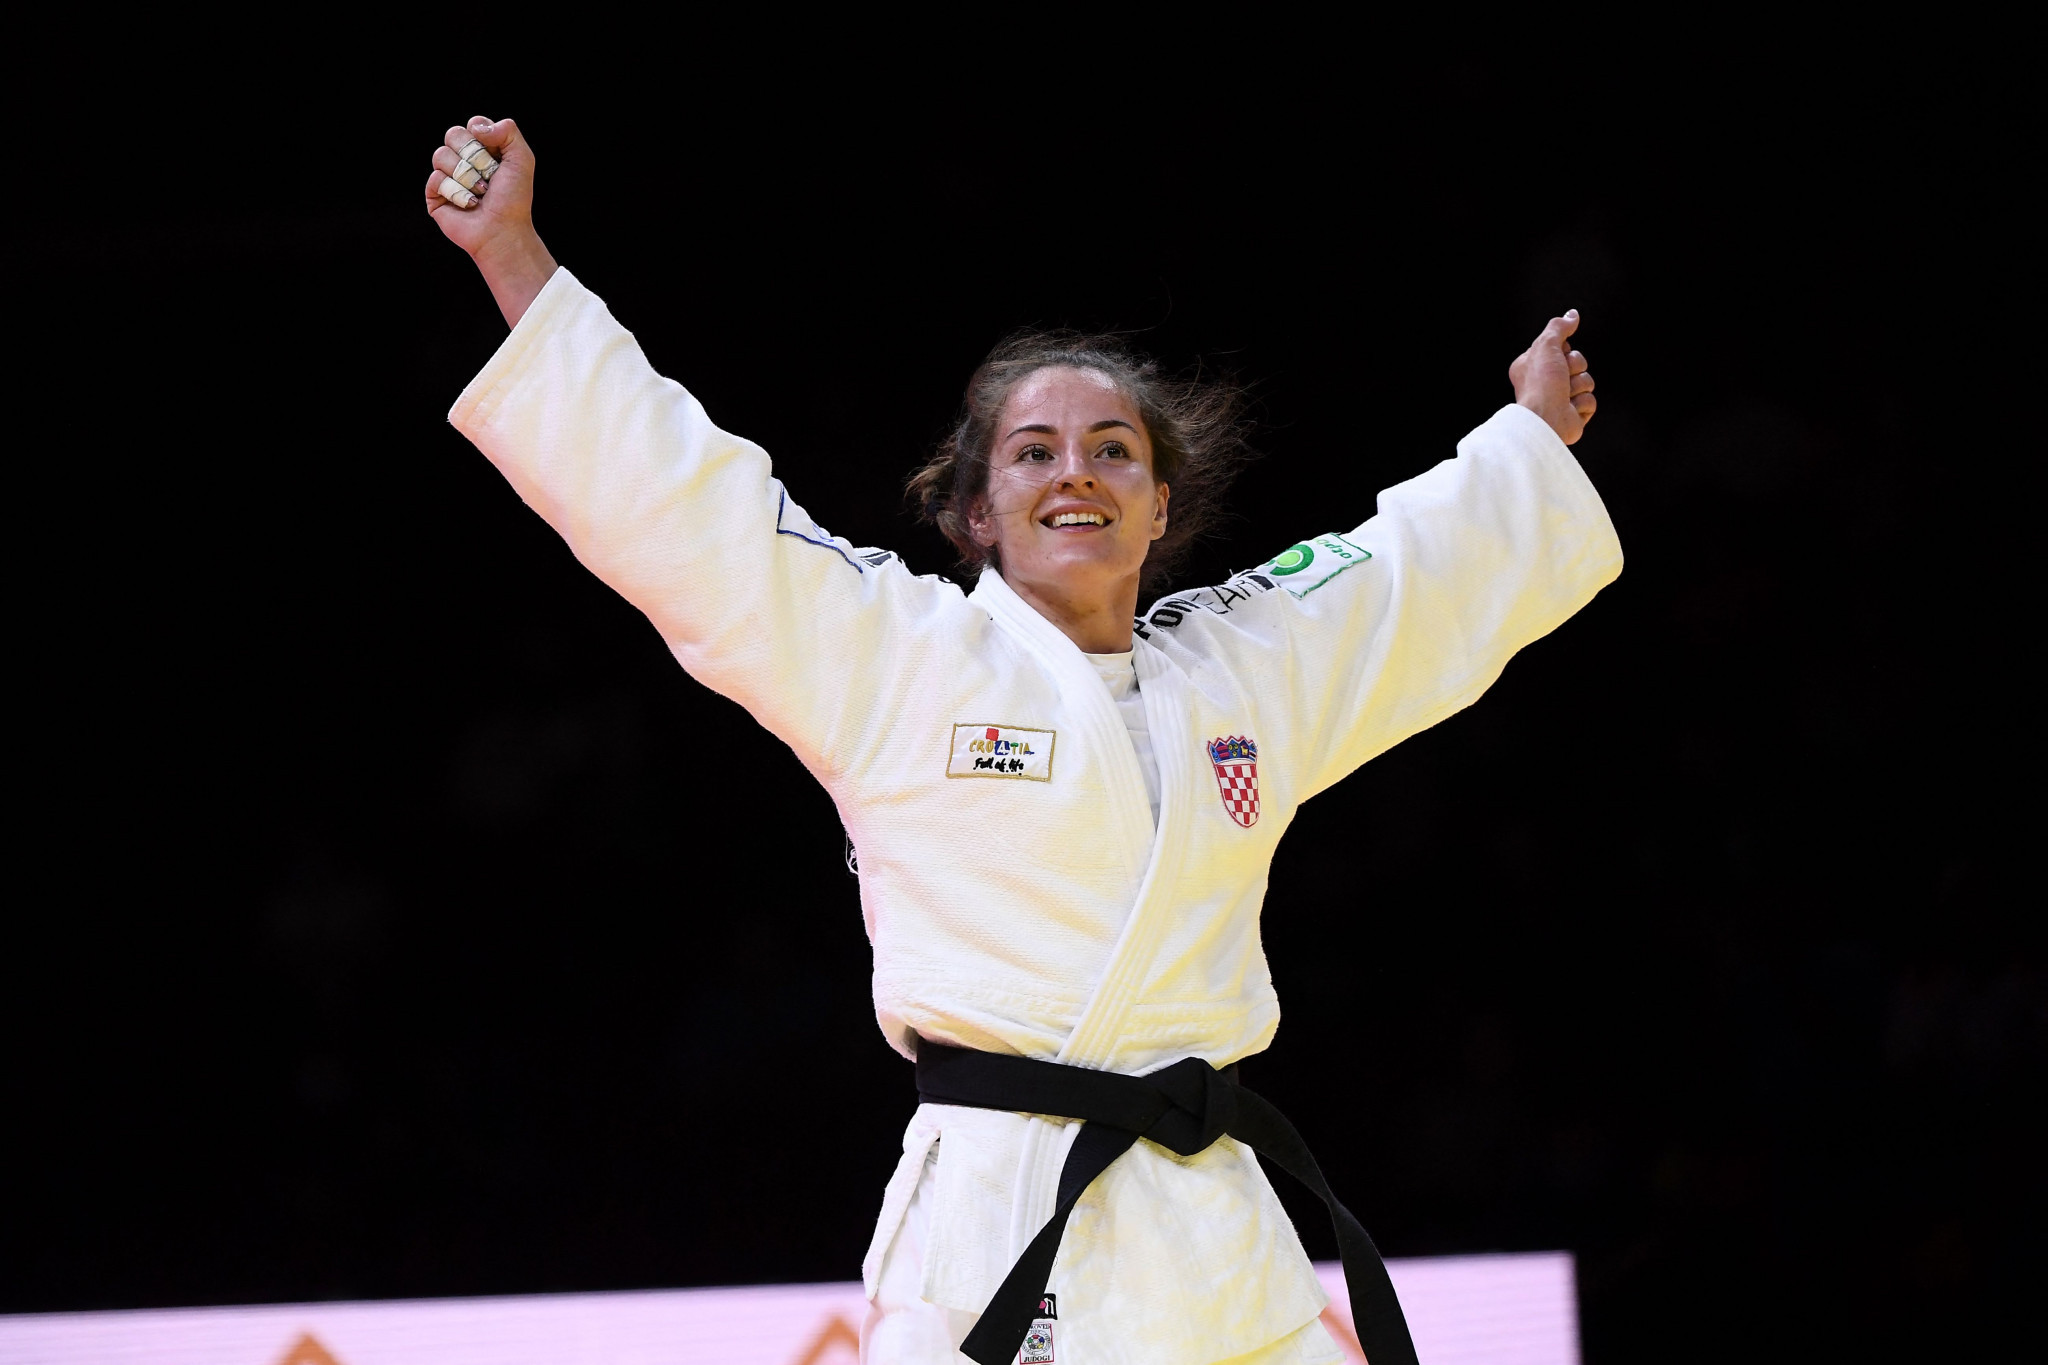 Barbara Matić saw off Yoko Ono in the women's under-70kg final ©Getty Images